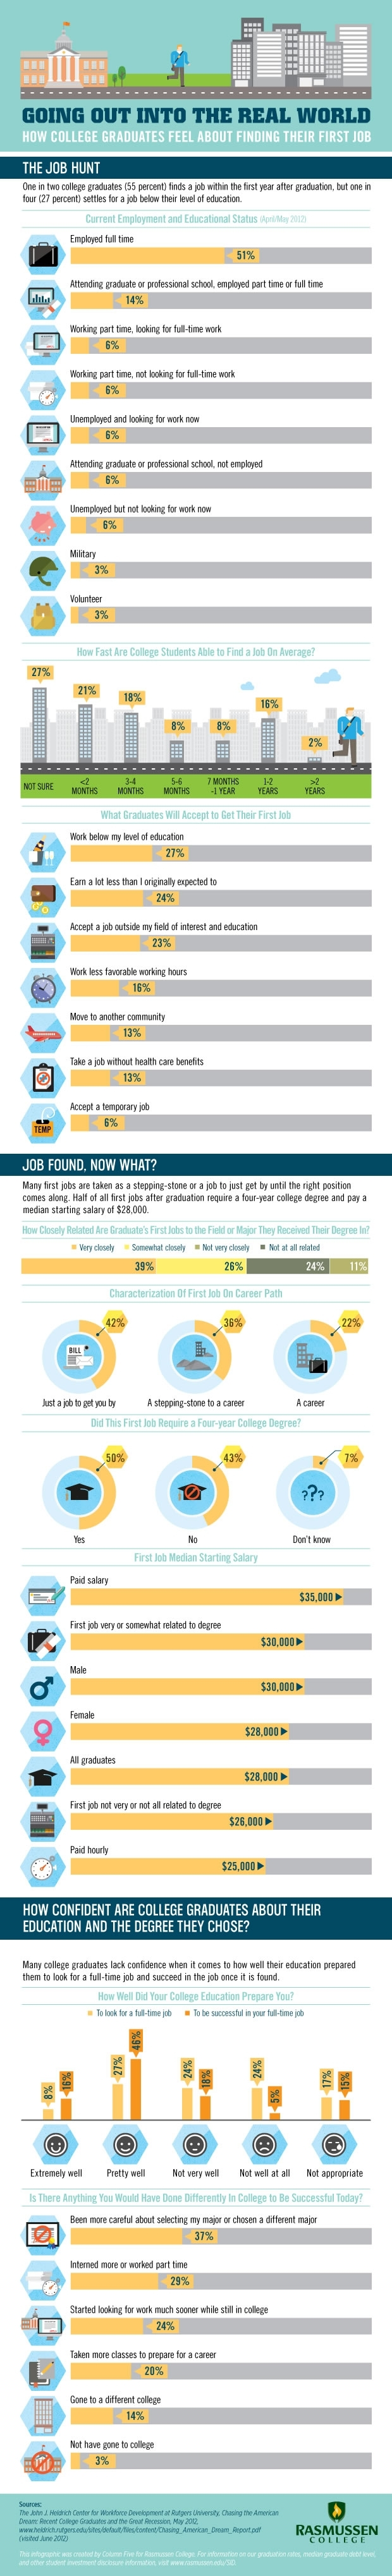 Are Fresh Grads Getting The Job They Want